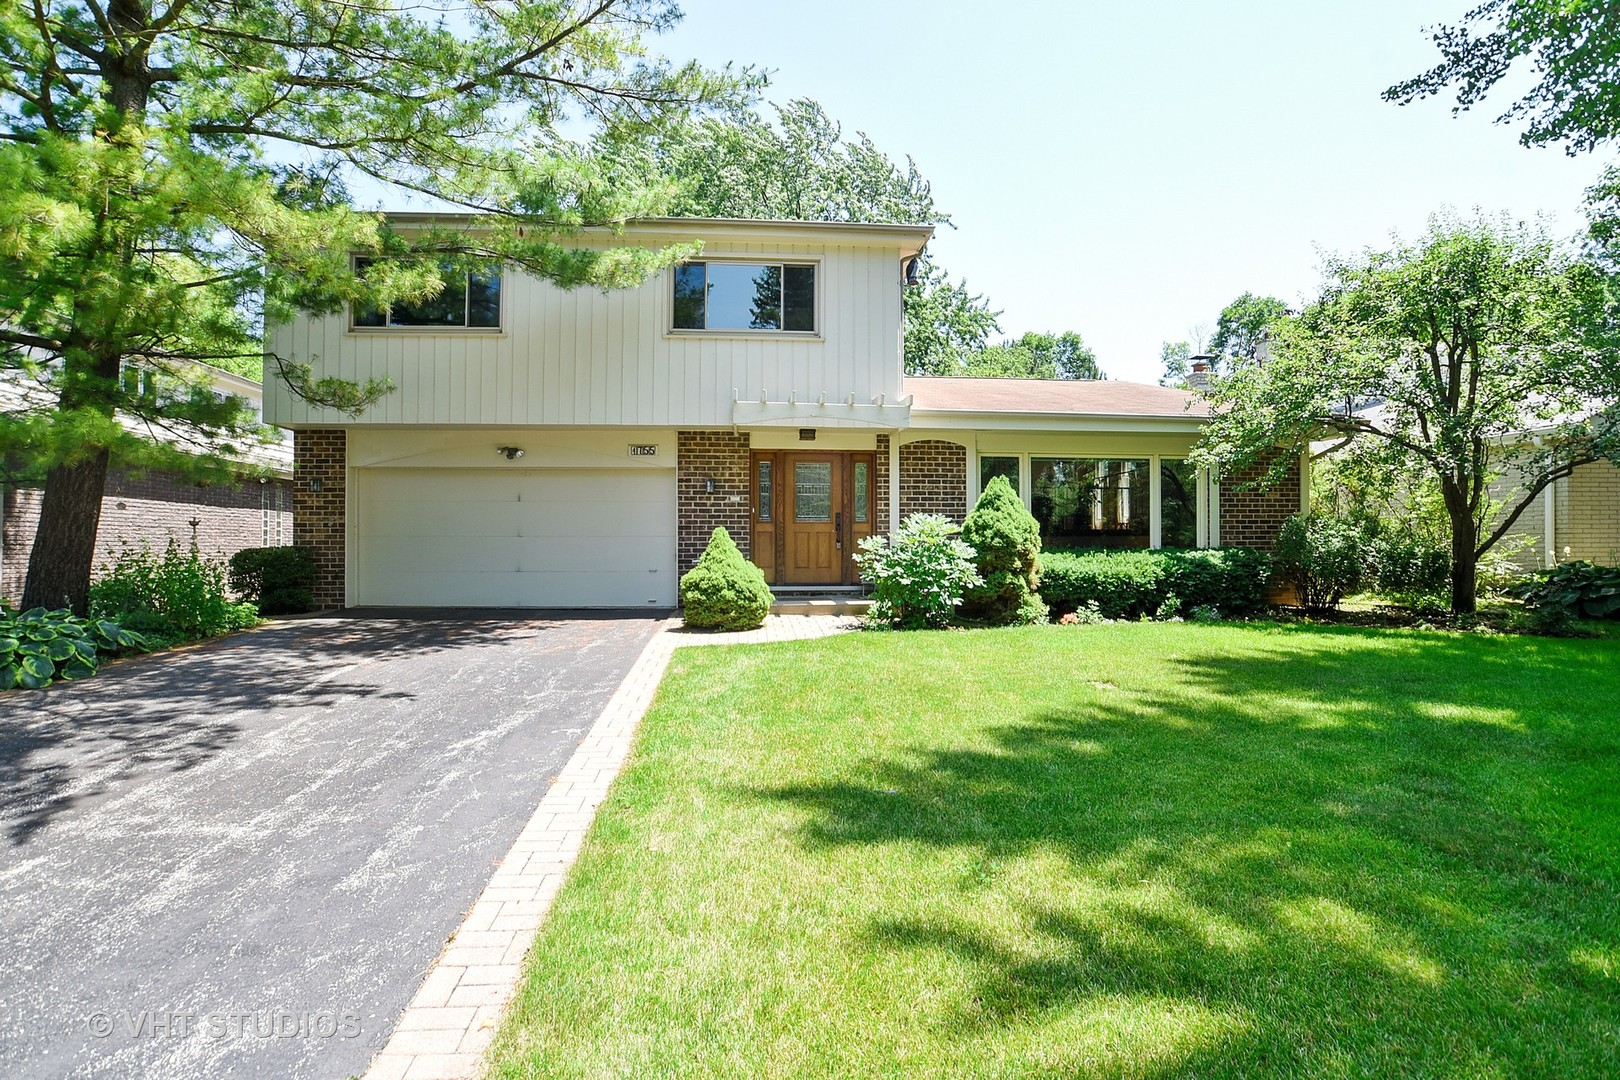 1755 Sherwood ,Highland Park, Illinois 60035